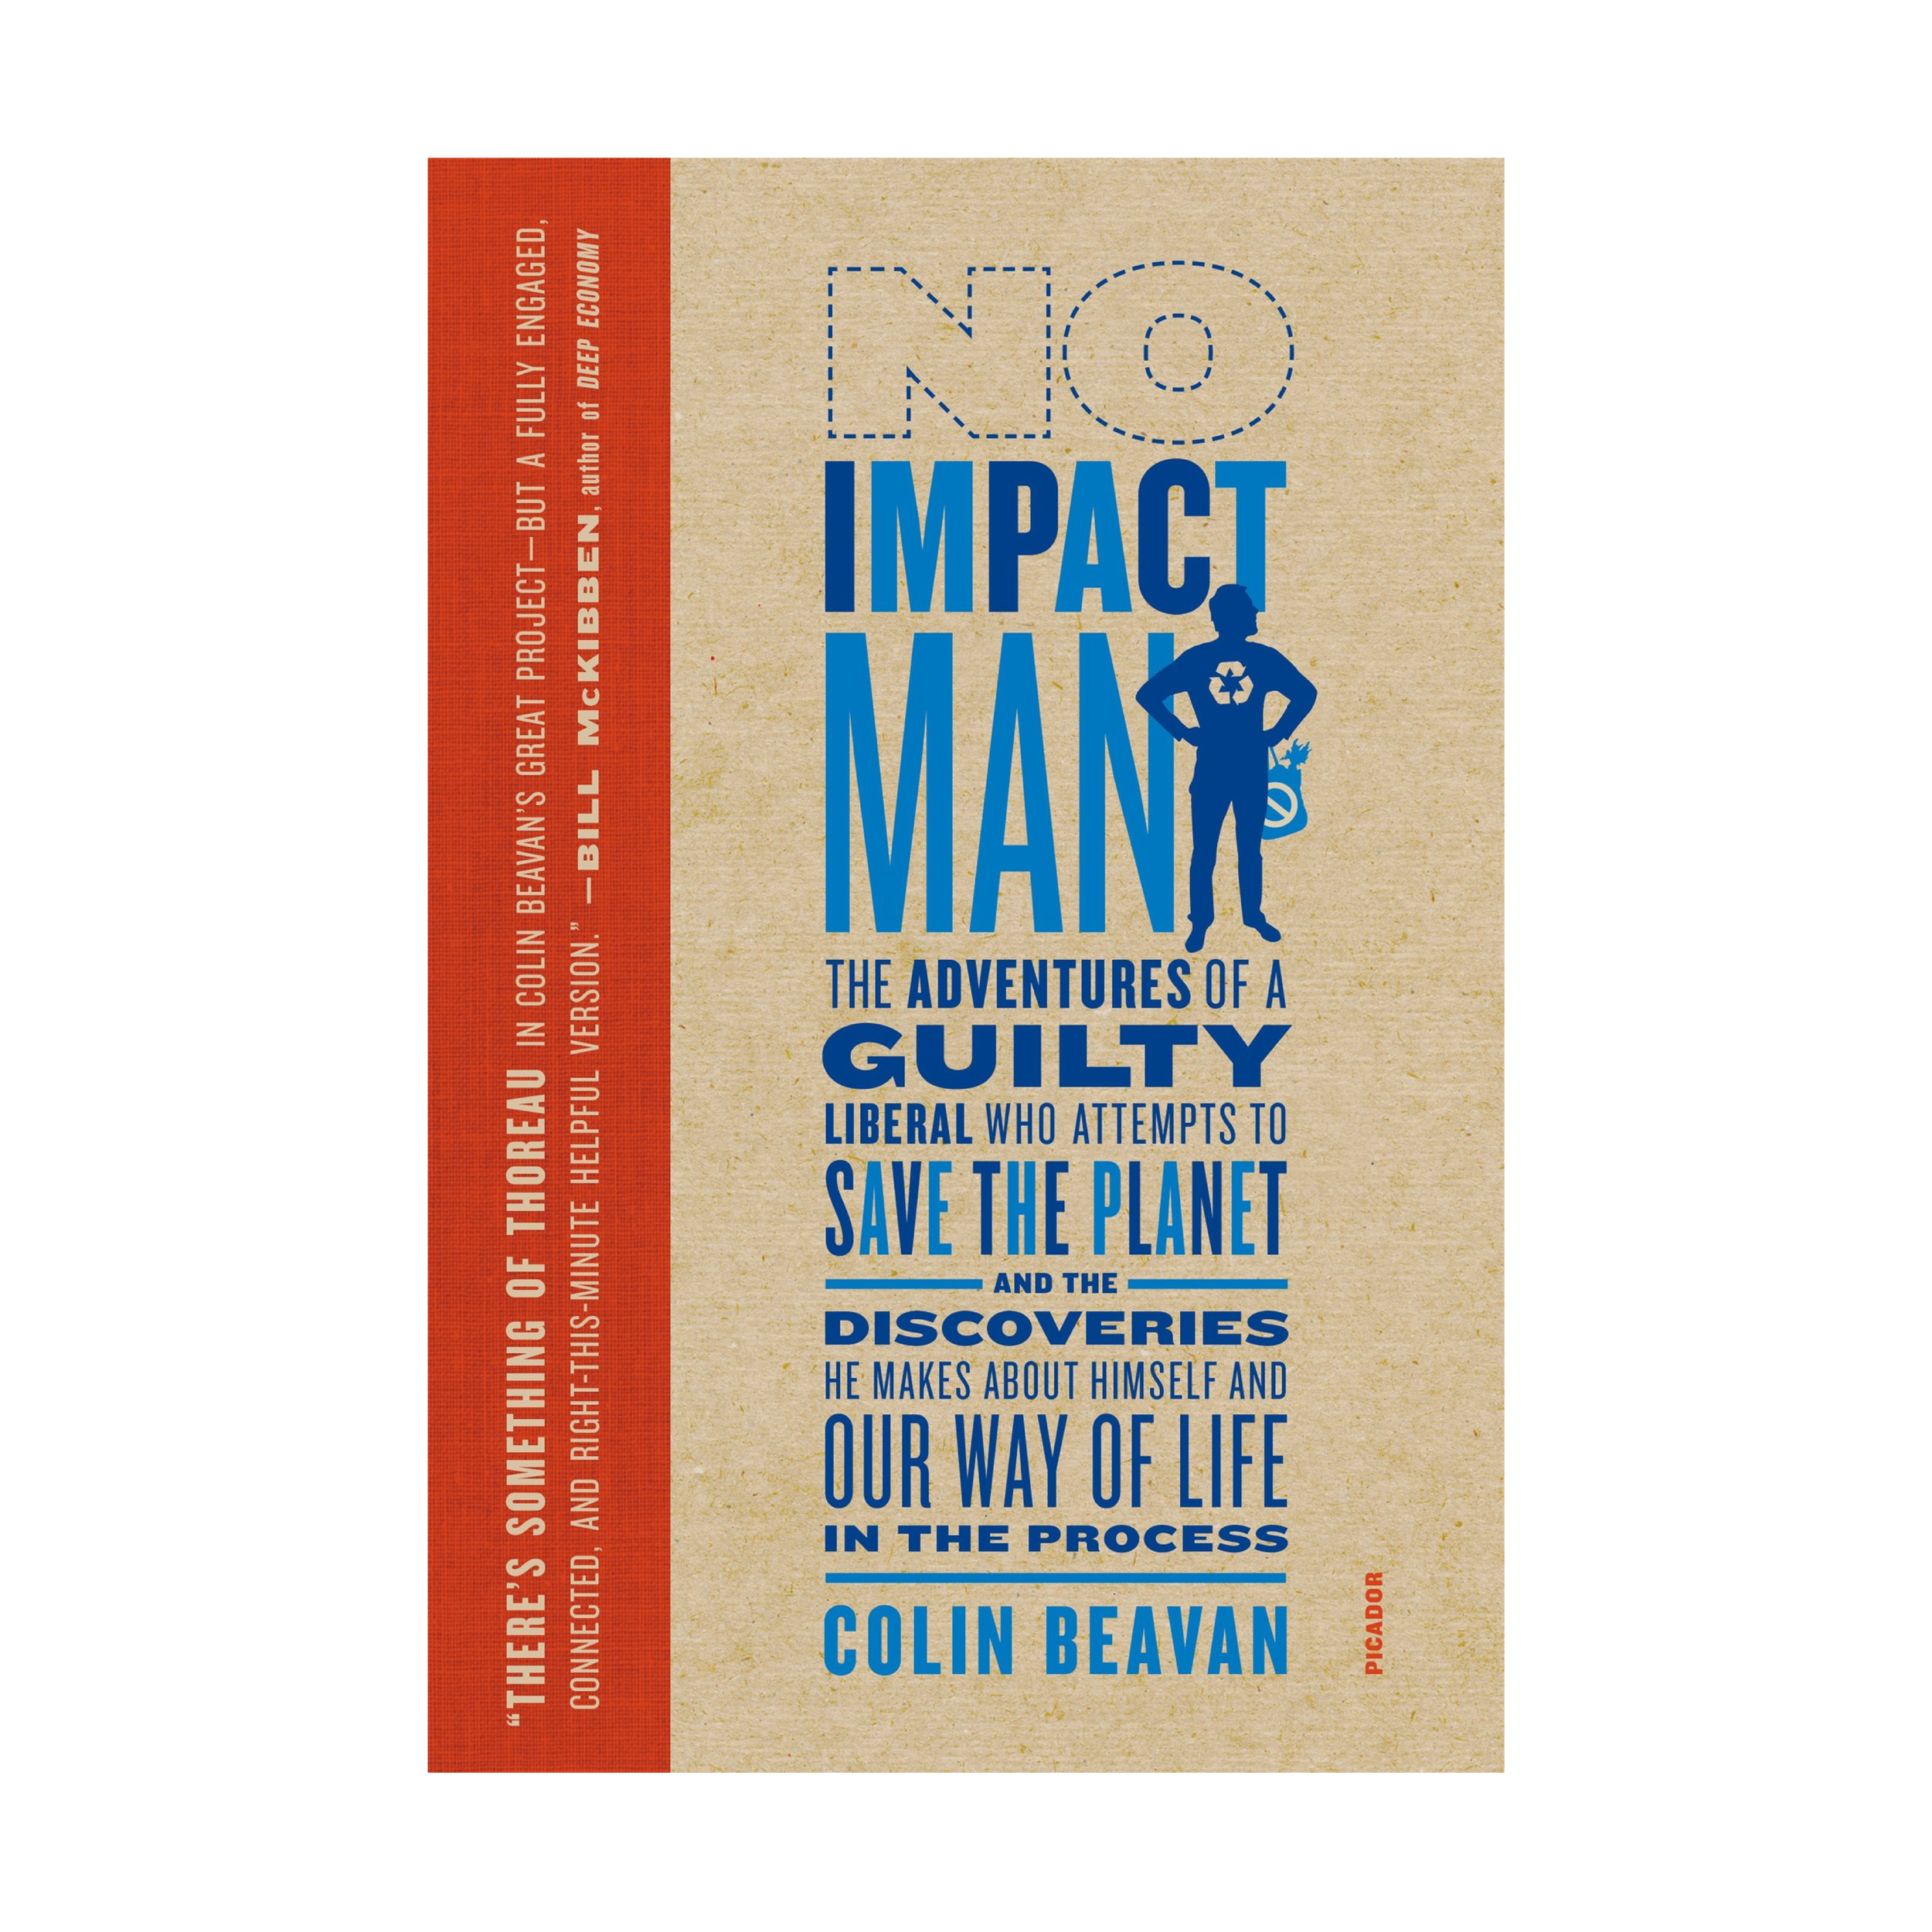 The book that sparked our No Lights Challenge for a month - a VERY good and knowledgable read about Colin Beavan's experiment to make zero impact on the Earth for a year with his wife and baby while living in New York City.